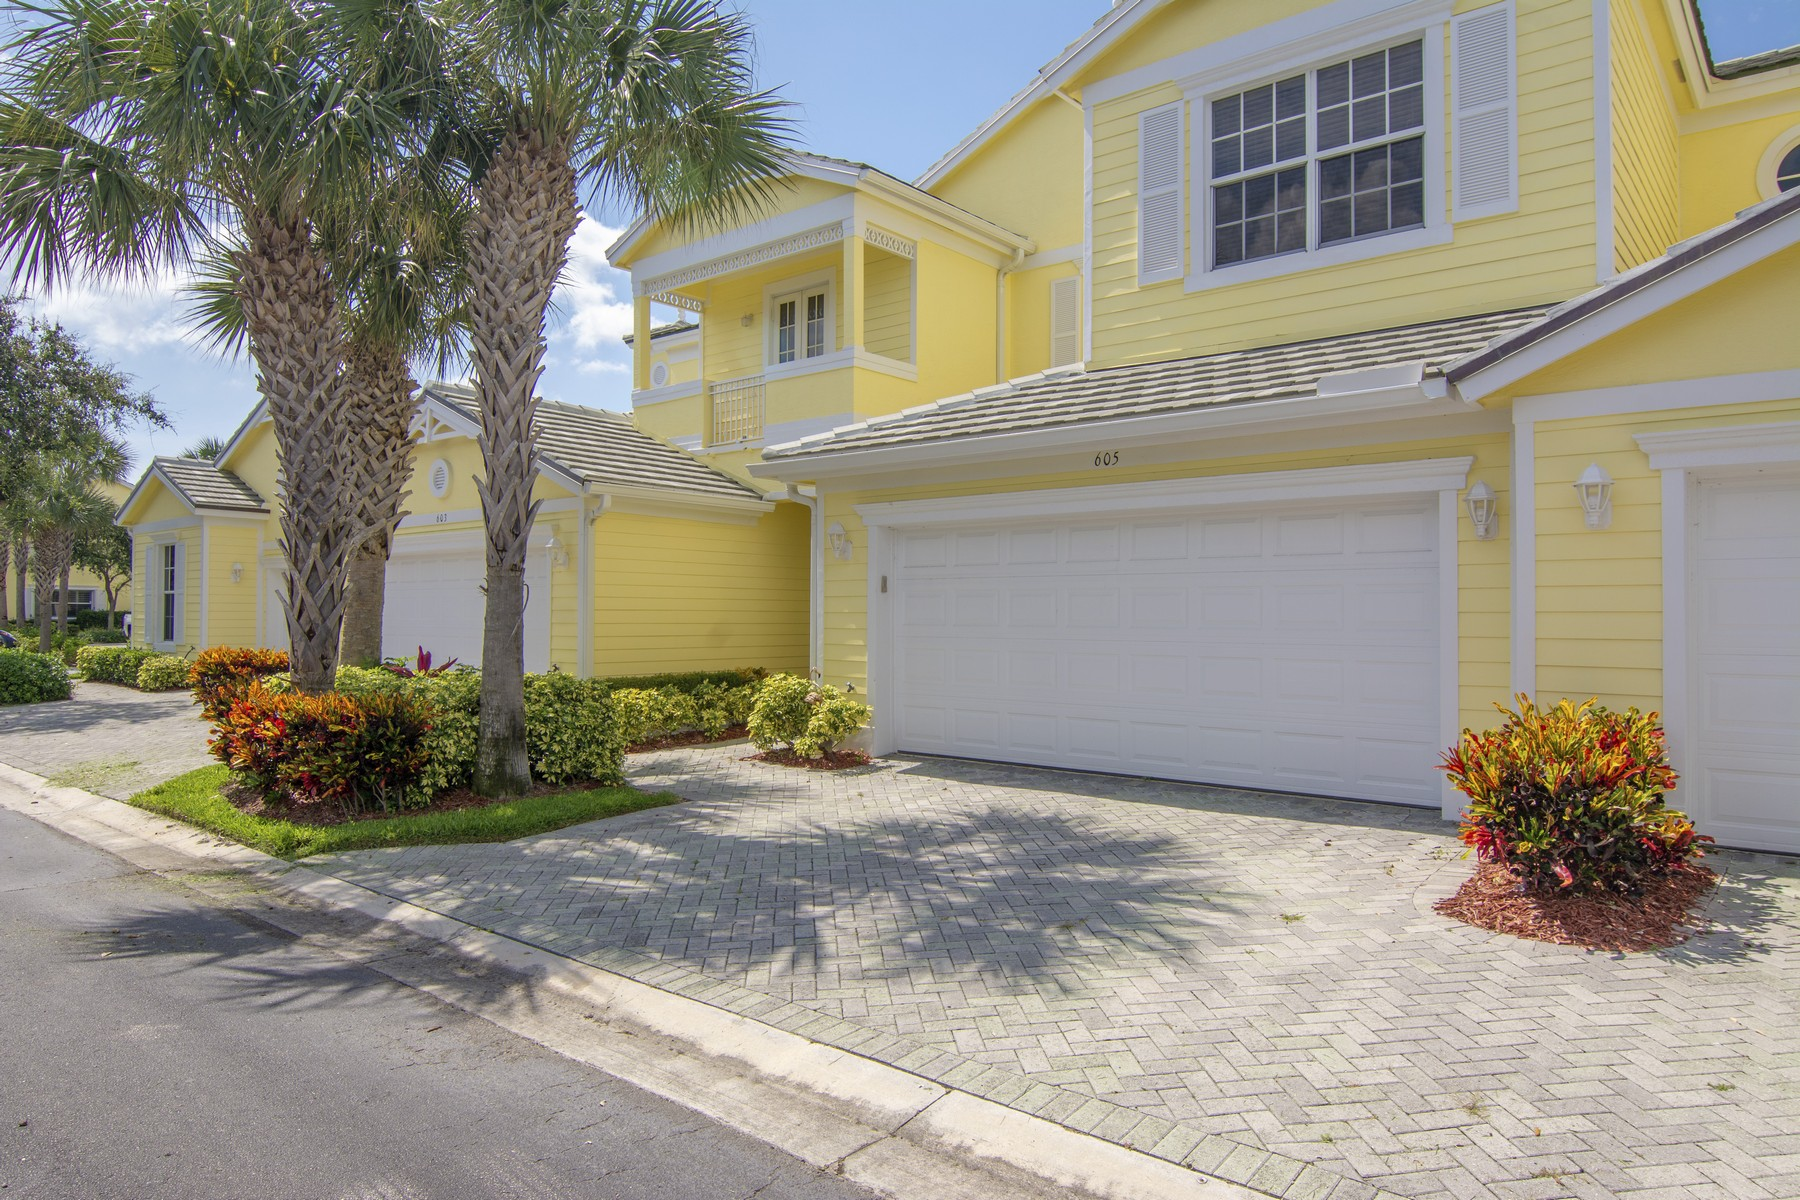 Townhouse for Sale at Mariner Bay Hutchinson Island Home 605 Mariner Bay Blvd Fort Pierce, Florida 34949 United States